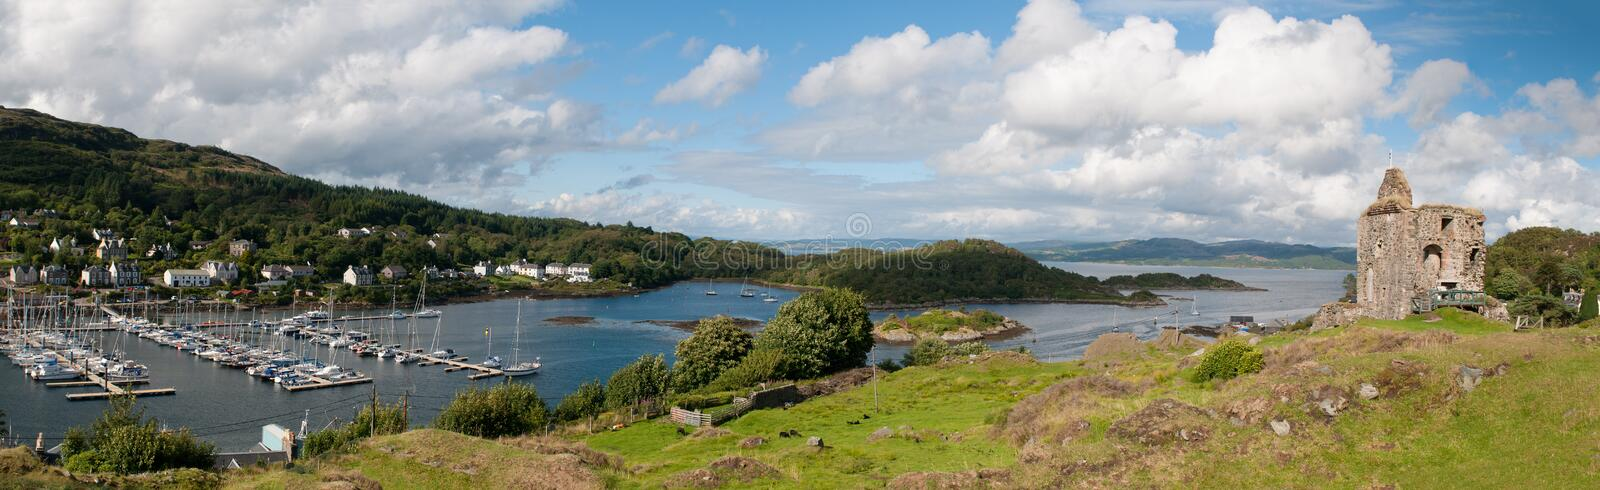 Loch Fyne de Tarbert, photos stock